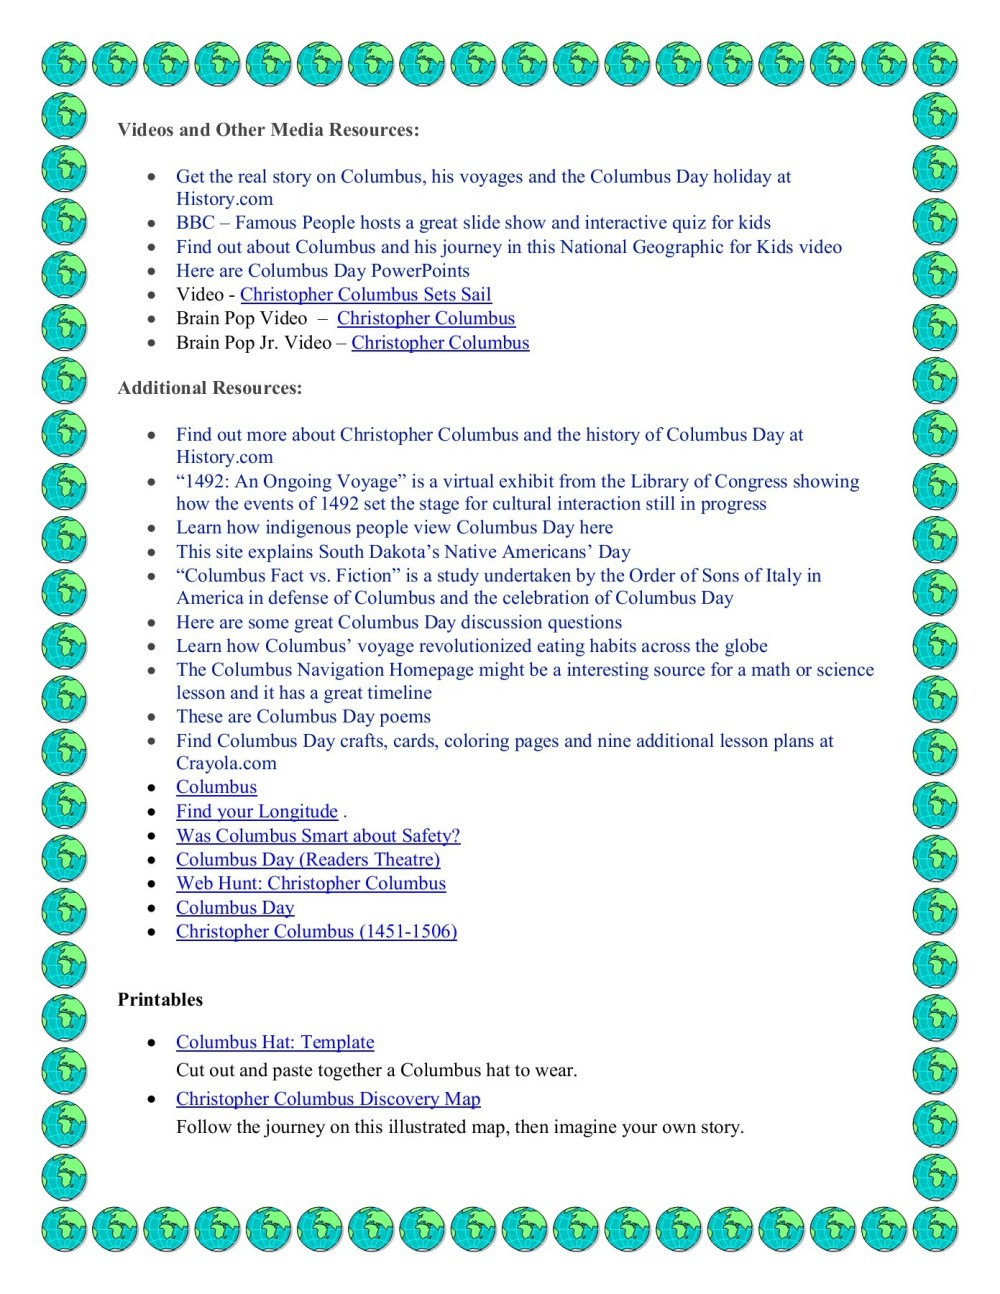 medium resolution of Columbus Day Elementary Resources Pages 1 - 3 - Flip PDF Download    FlipHTML5